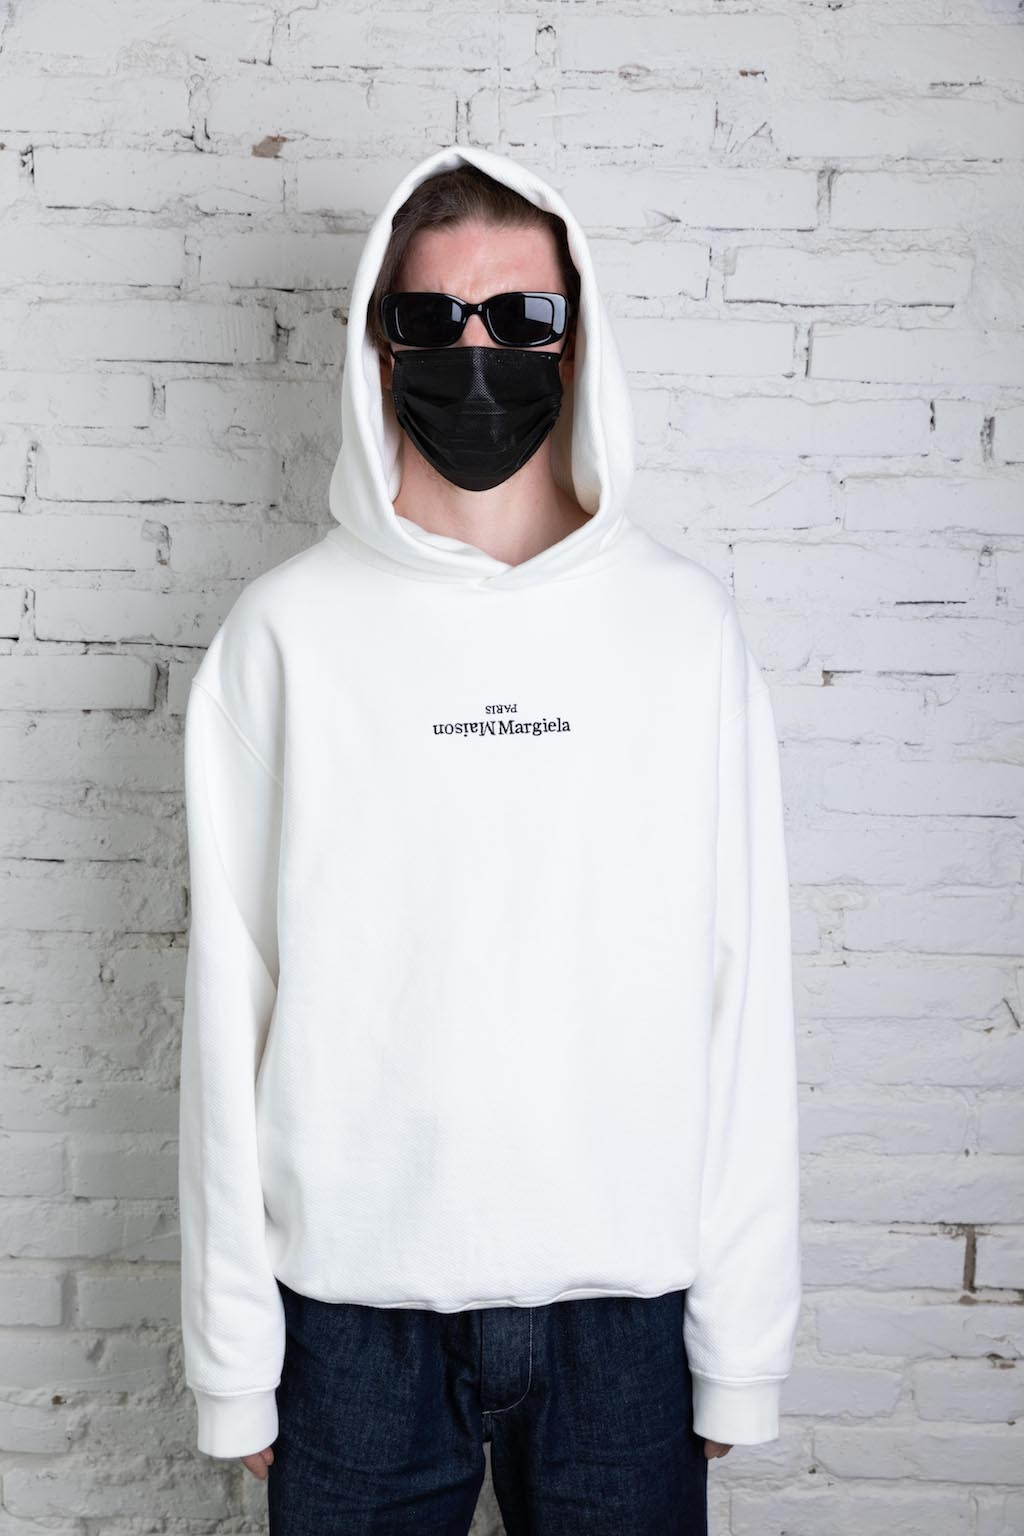 Maison Margiela Man PRE AW20 is in store!